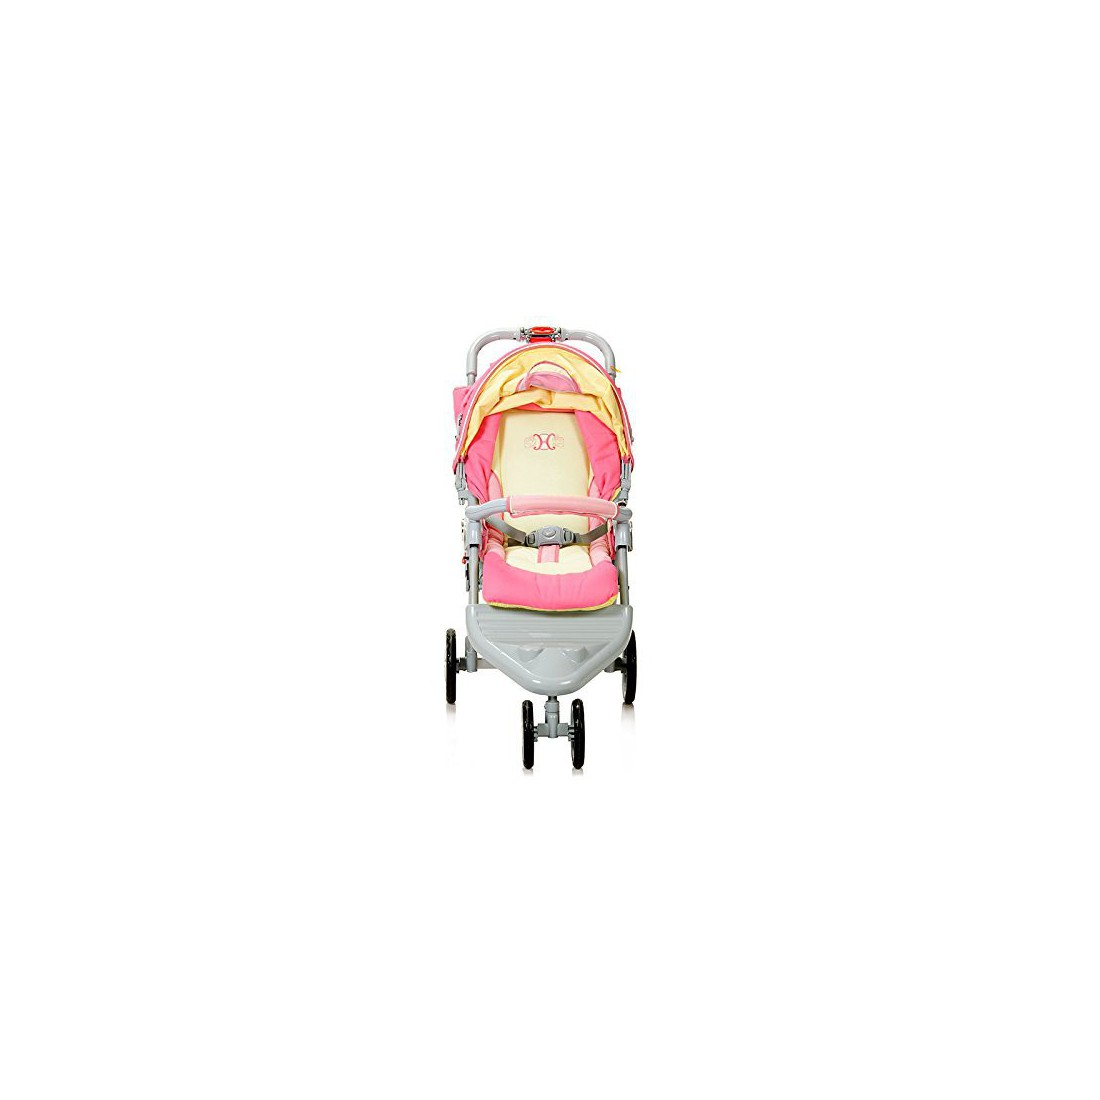 Haenim Premium Large Wheel Base Premium Stroller, Made in South Korea (Red)